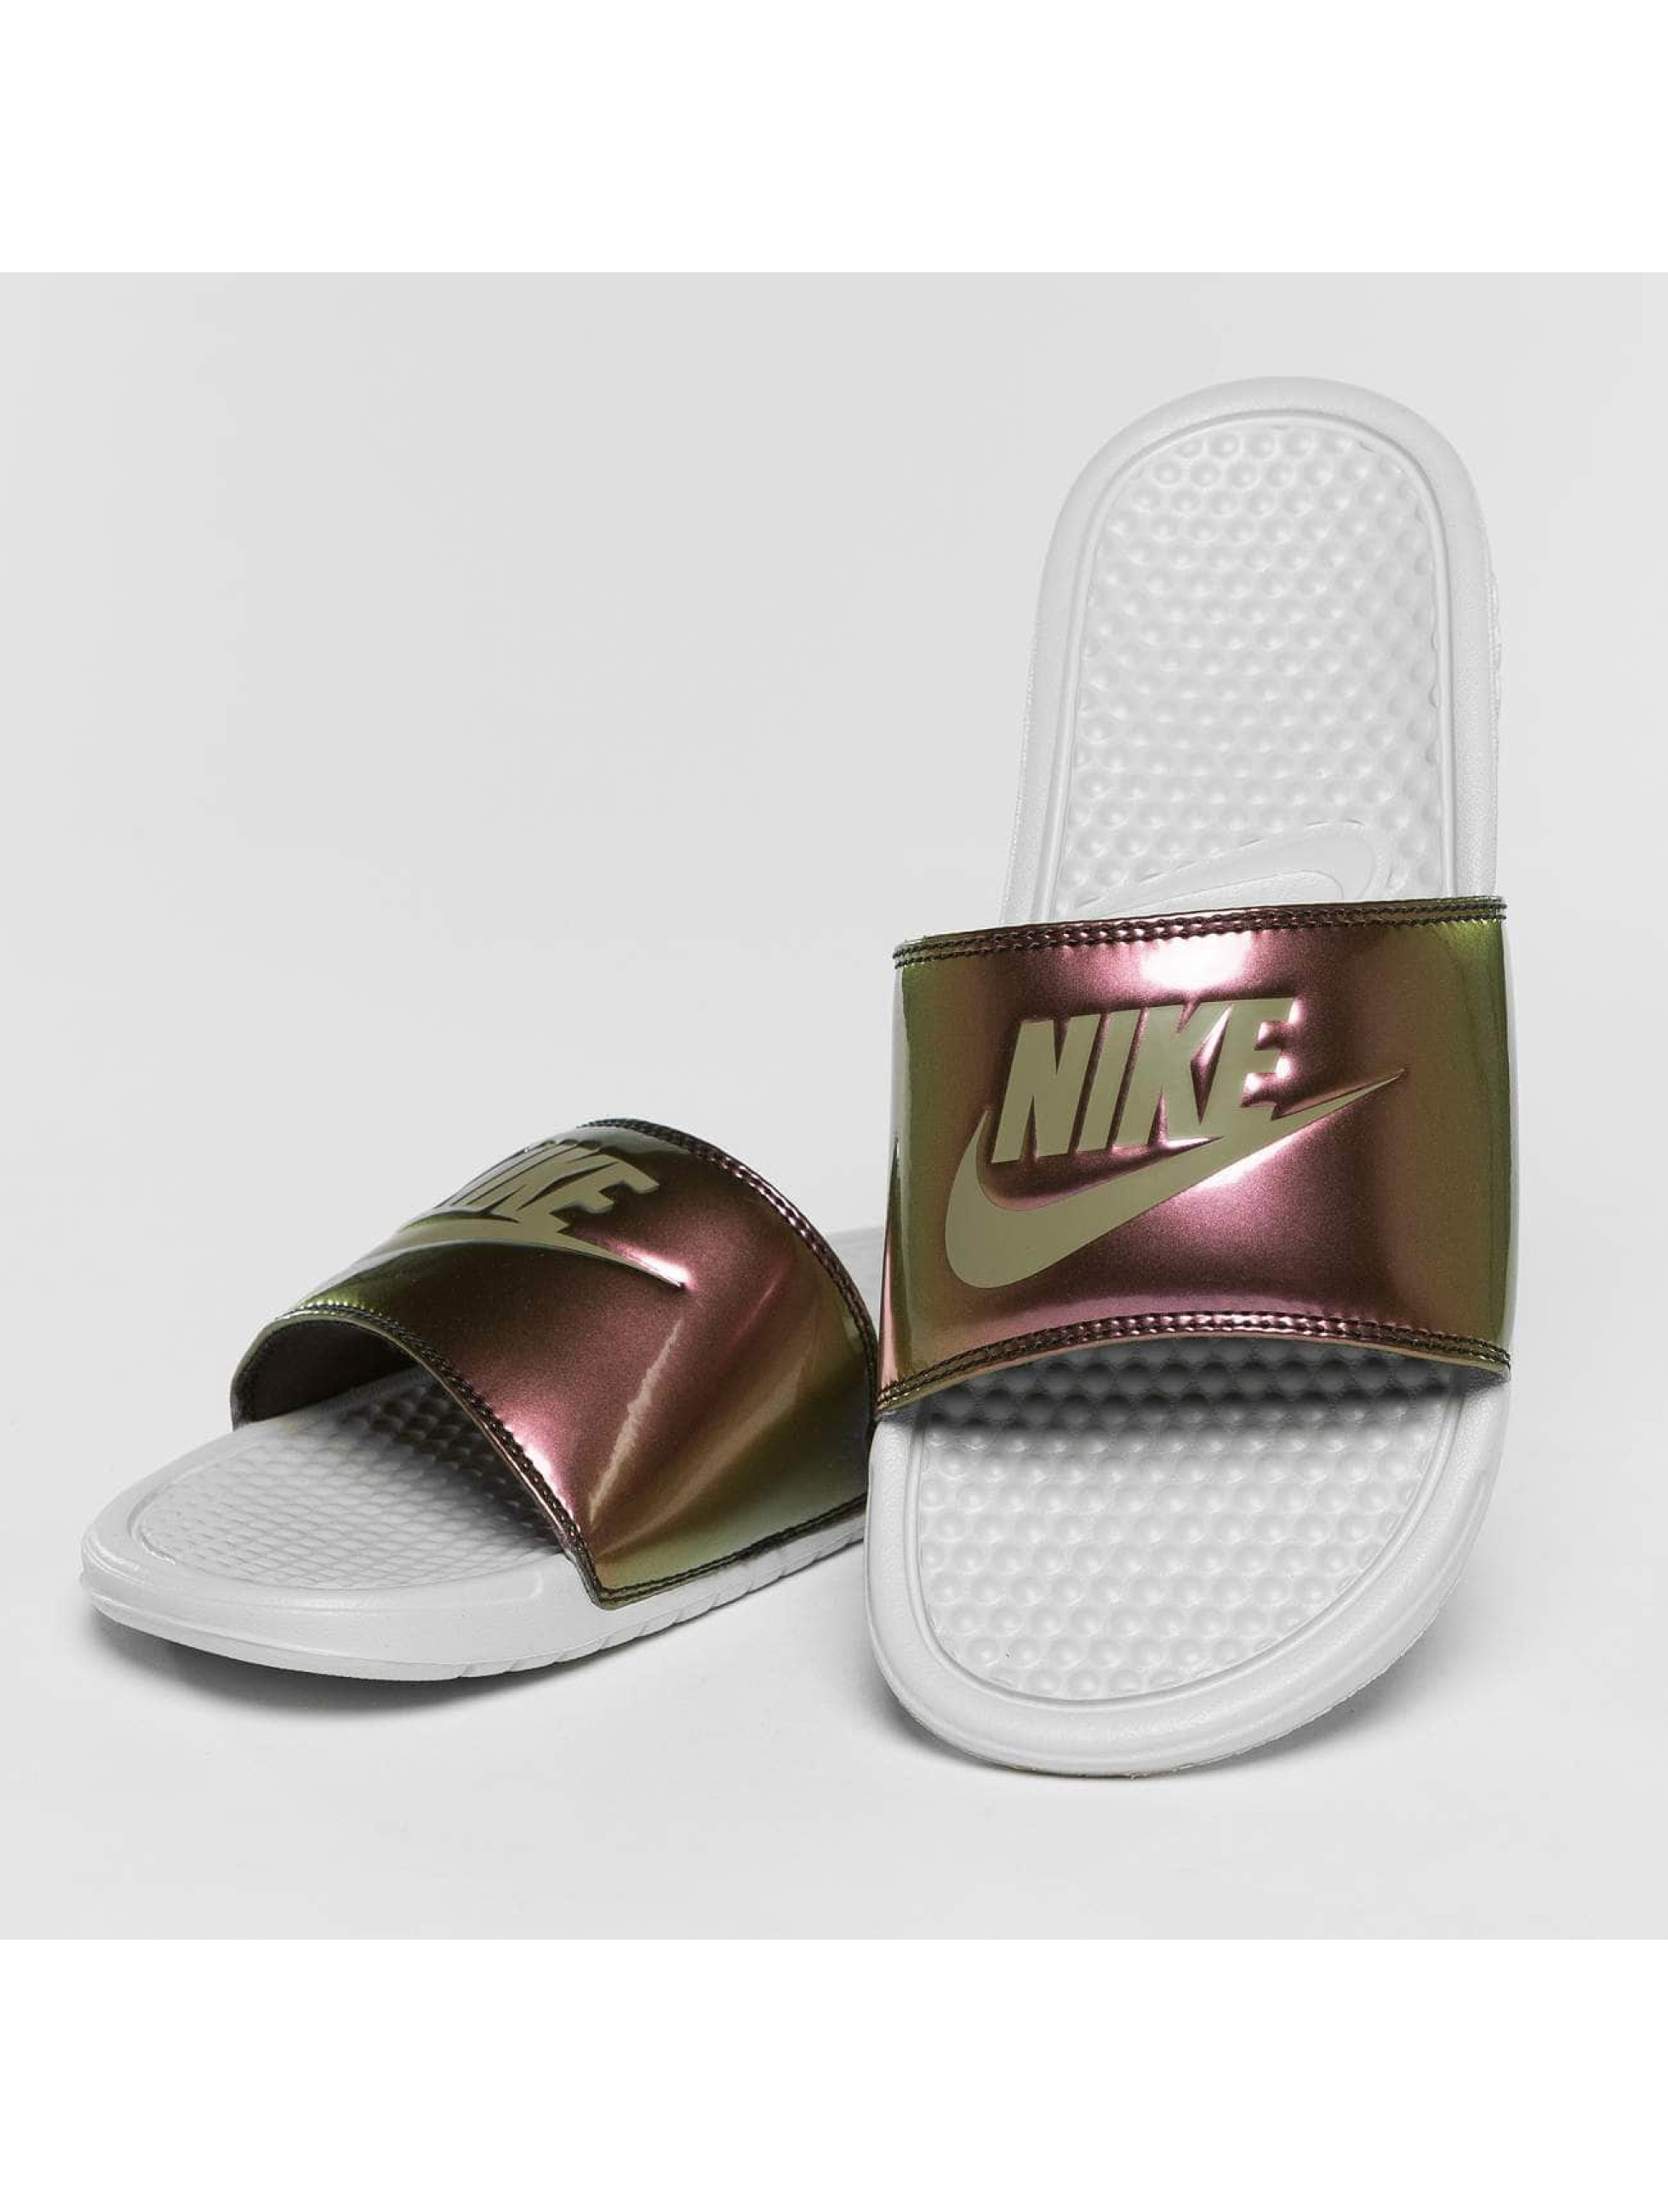 Nike Claquettes & Sandales Just Do It blanc